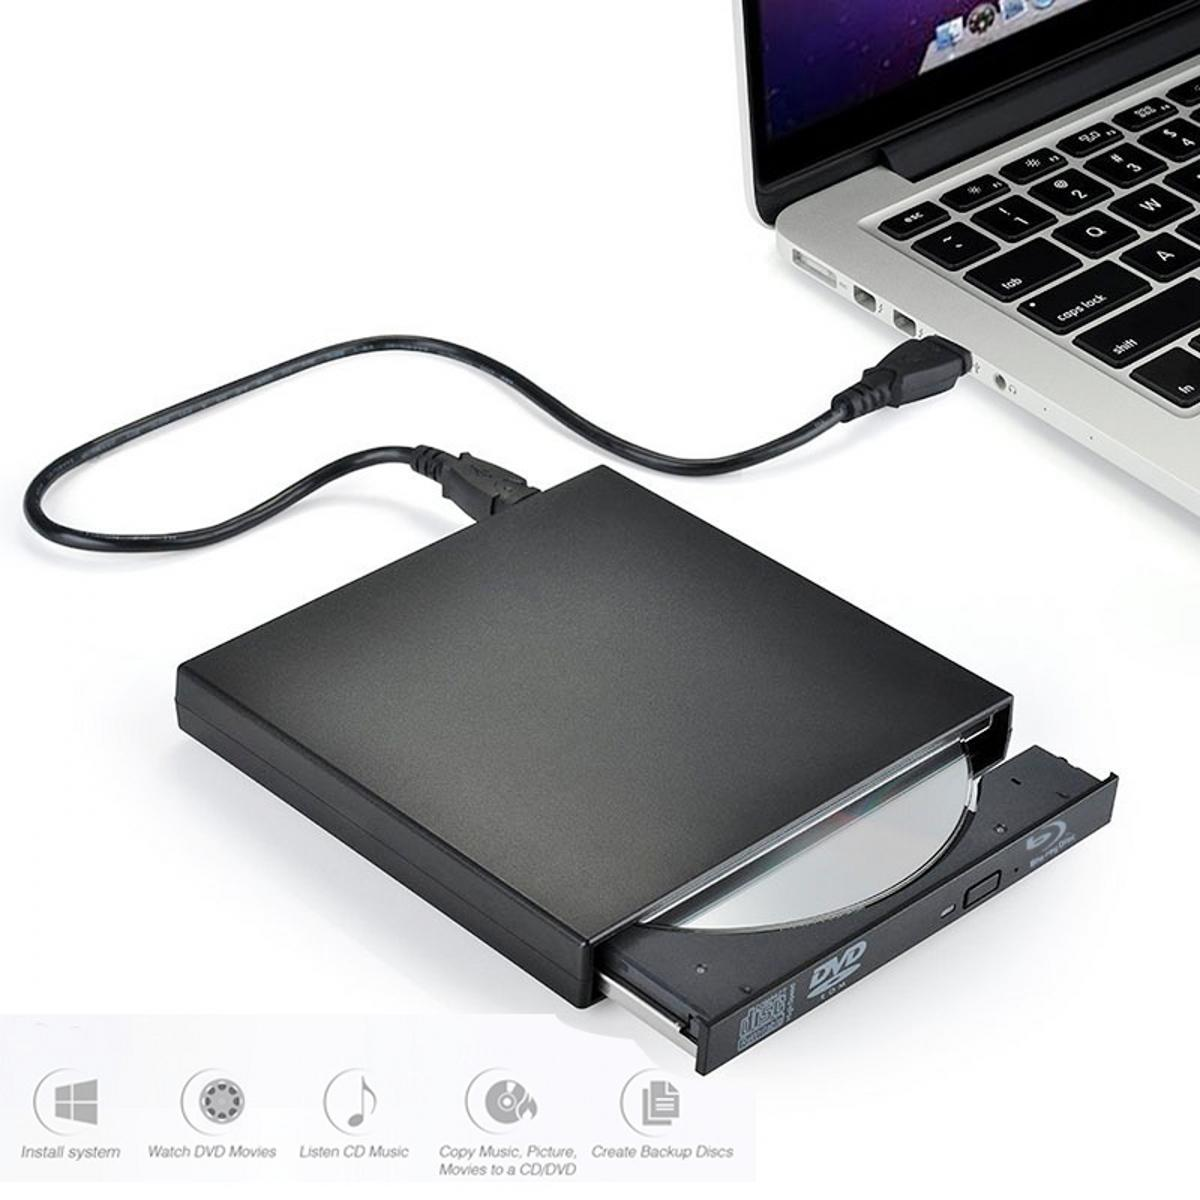 Black USB 2.0 External BD Blu Ray DVD+/RW DVD+/-DL CD+/-RW Drive Writer Burner 3D Play For WINDOWS XP/7/8/10 Mac Desktop Laptop сухой корм monge daily line adult dog mini rich in chicken с курицей для взрослых собак мелких пород 7 5кг